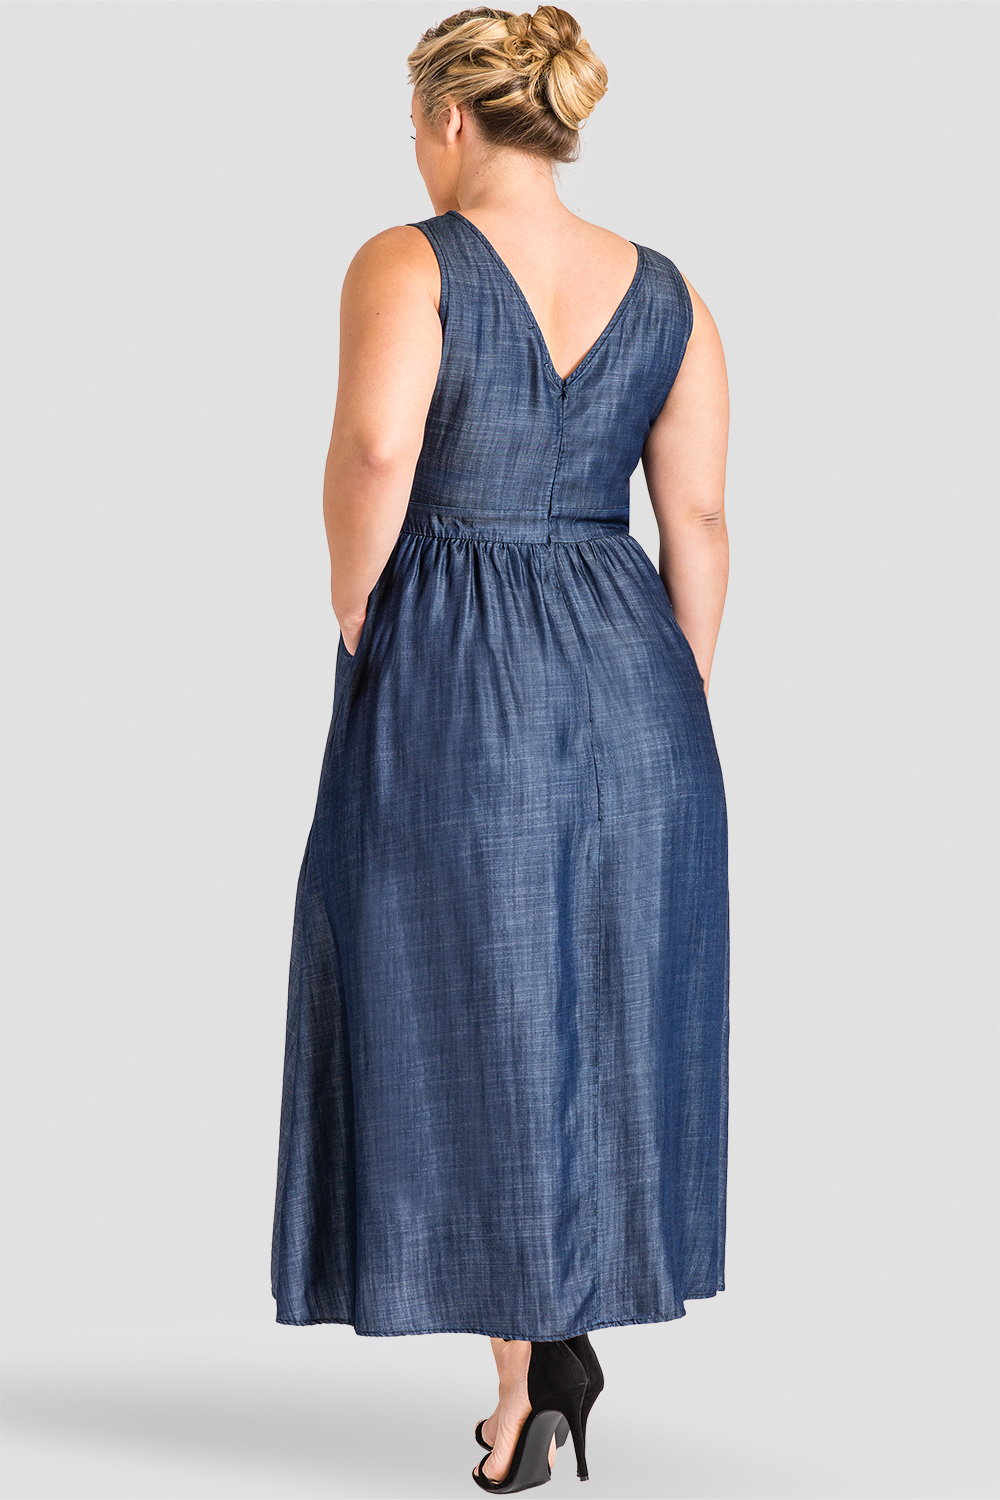 b1432911857 Standards   Practices - Standards   Practices Plus Size Indigo A ...